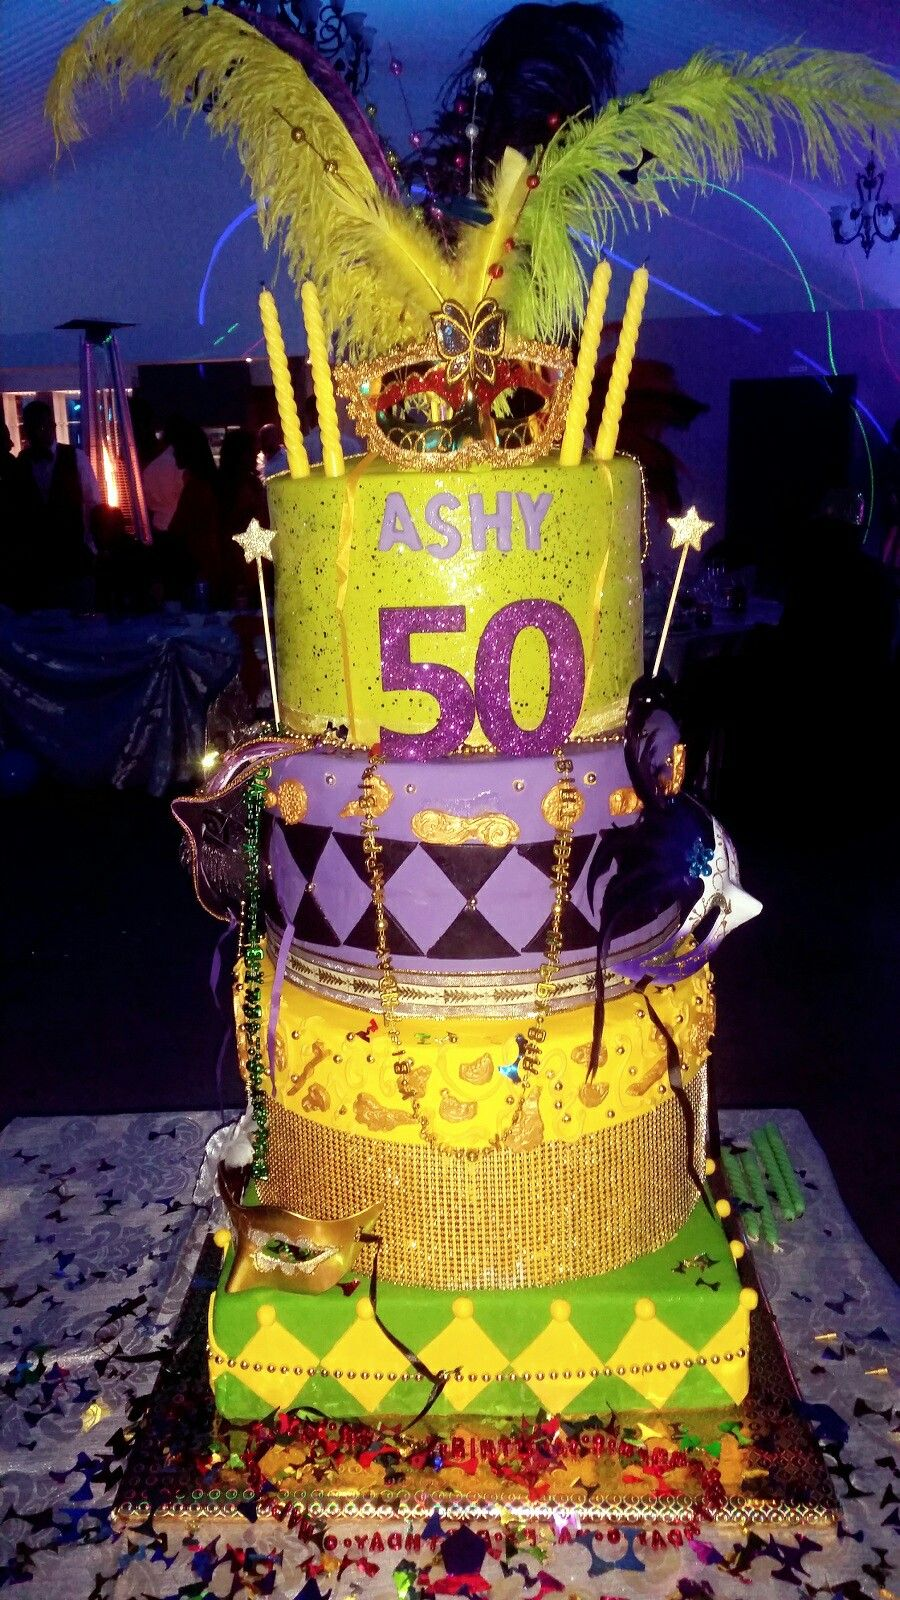 Mardi Gras 50th cake | Cool cakes | Pinterest | Mardi gras and Cake